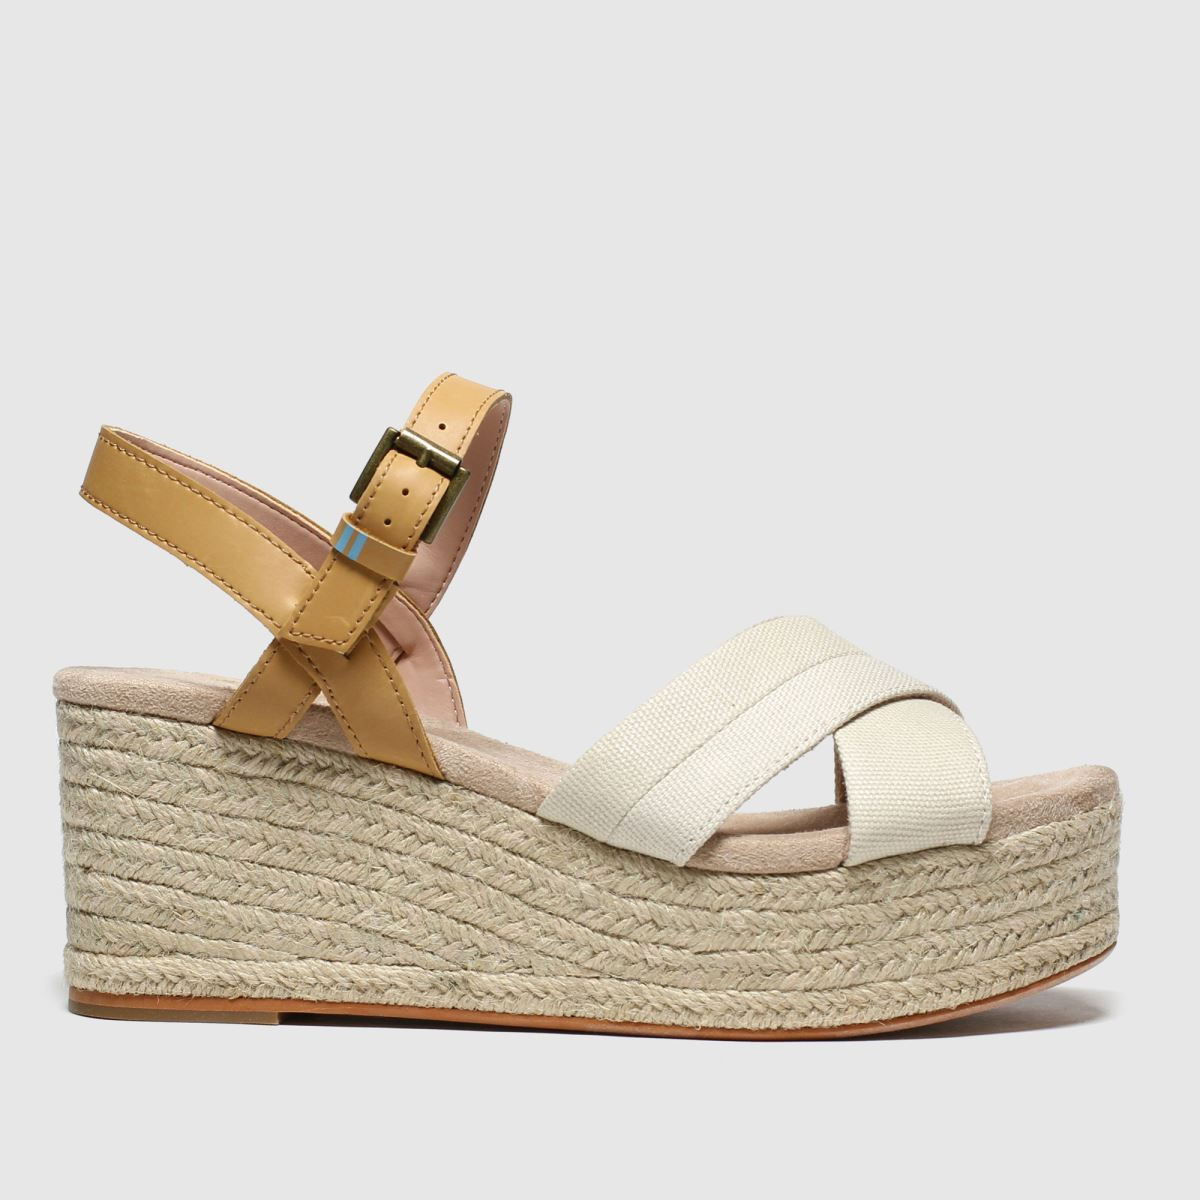 Toms Natural Willow Wedge Sandals